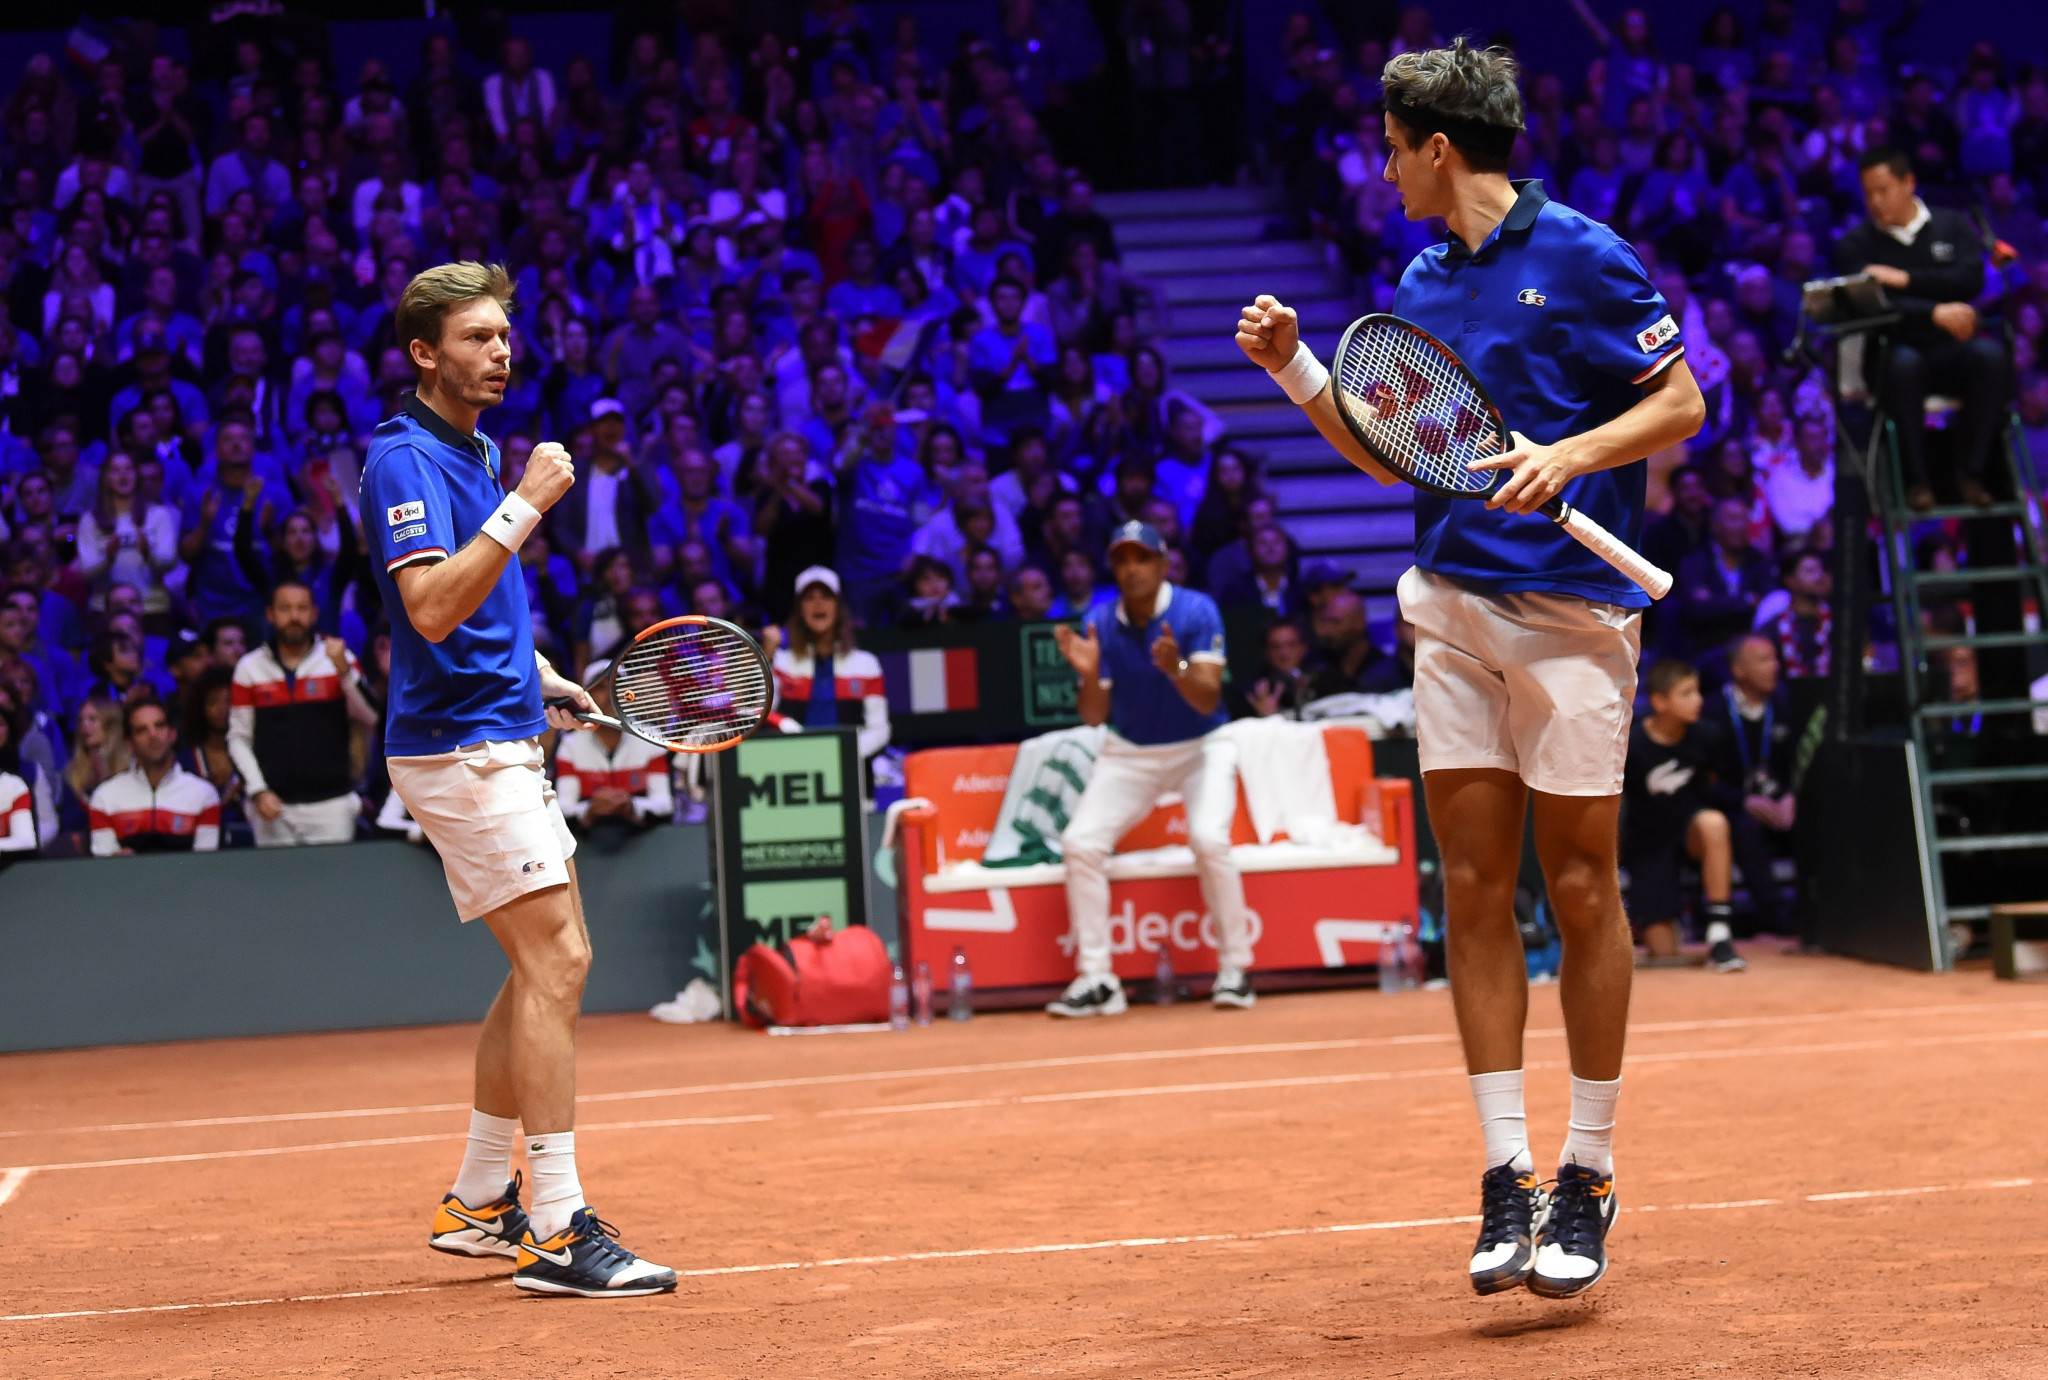 French duo claim vital doubles win to halve Croatia's lead at Davis Cup final